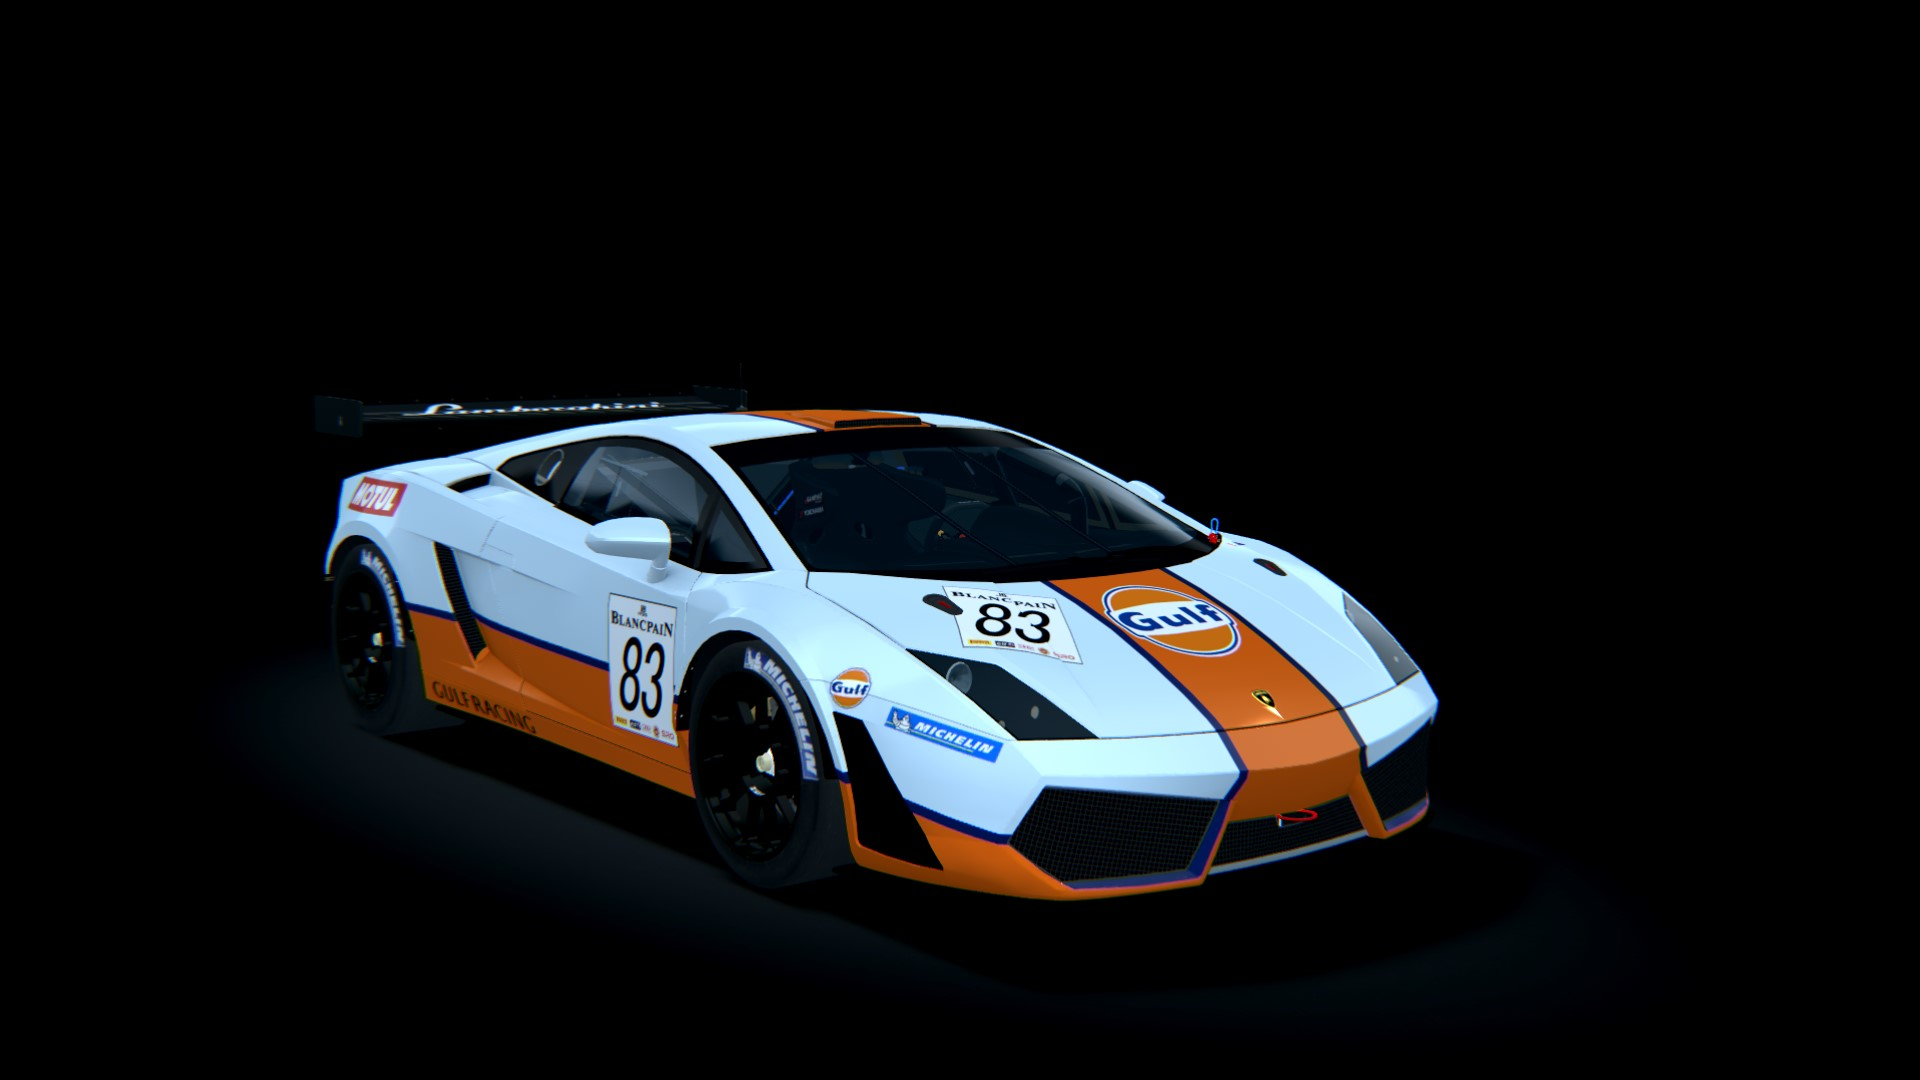 lamborghini gallardo gt3 lamborghini car detail. Black Bedroom Furniture Sets. Home Design Ideas